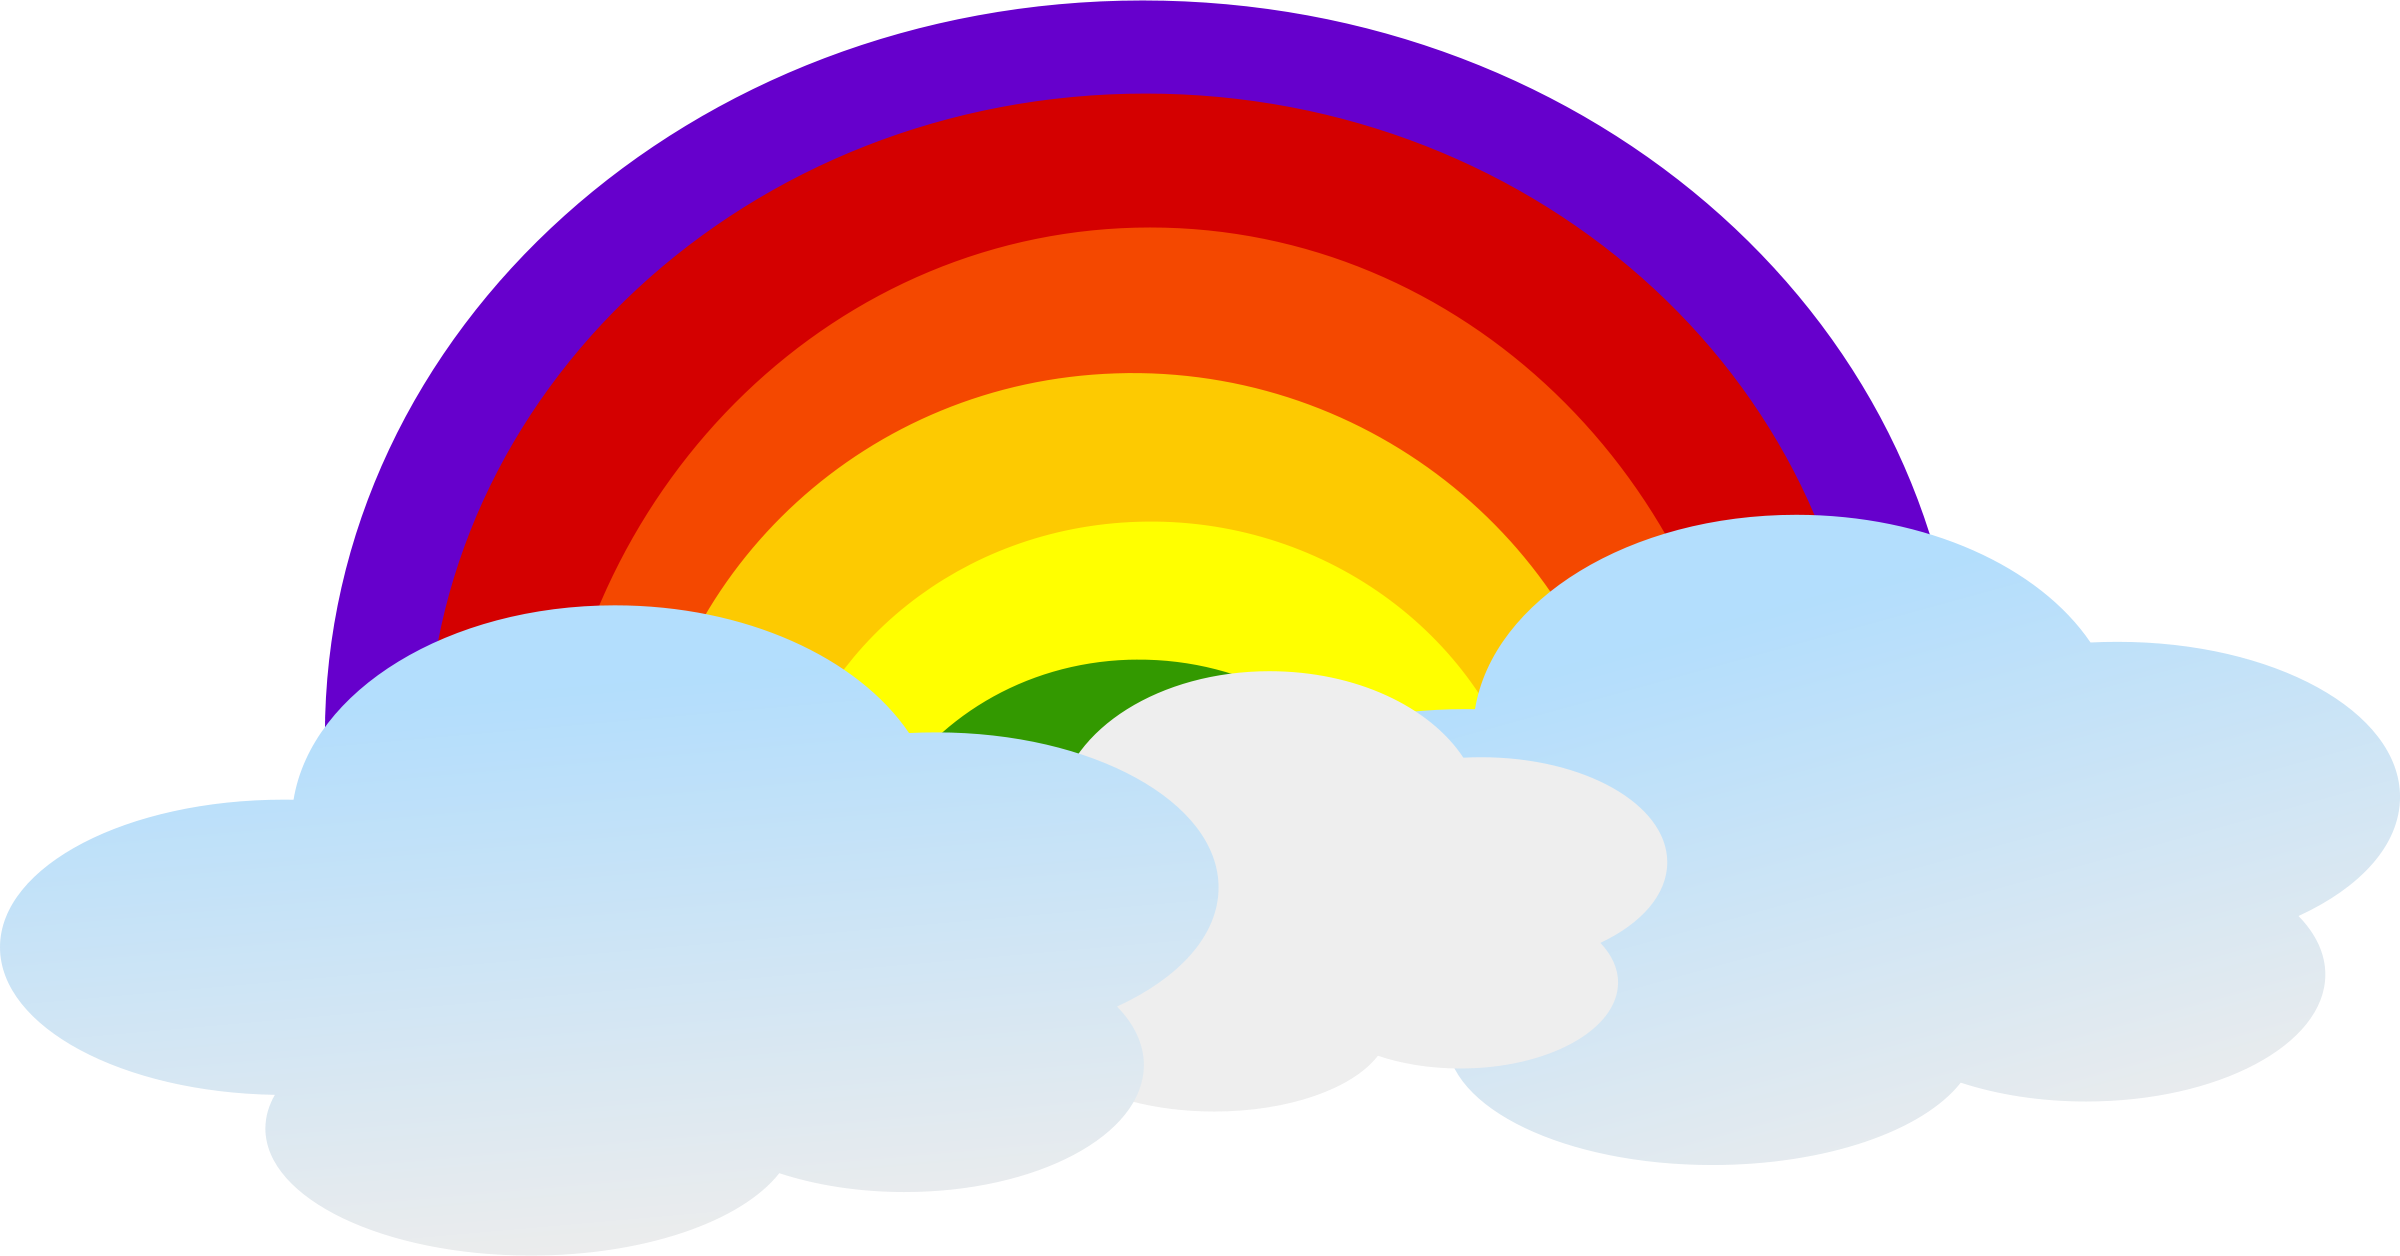 Rainbow and sun clipart graphic transparent stock Свързано изображение | Transparent Decoration PNG Picture ... graphic transparent stock